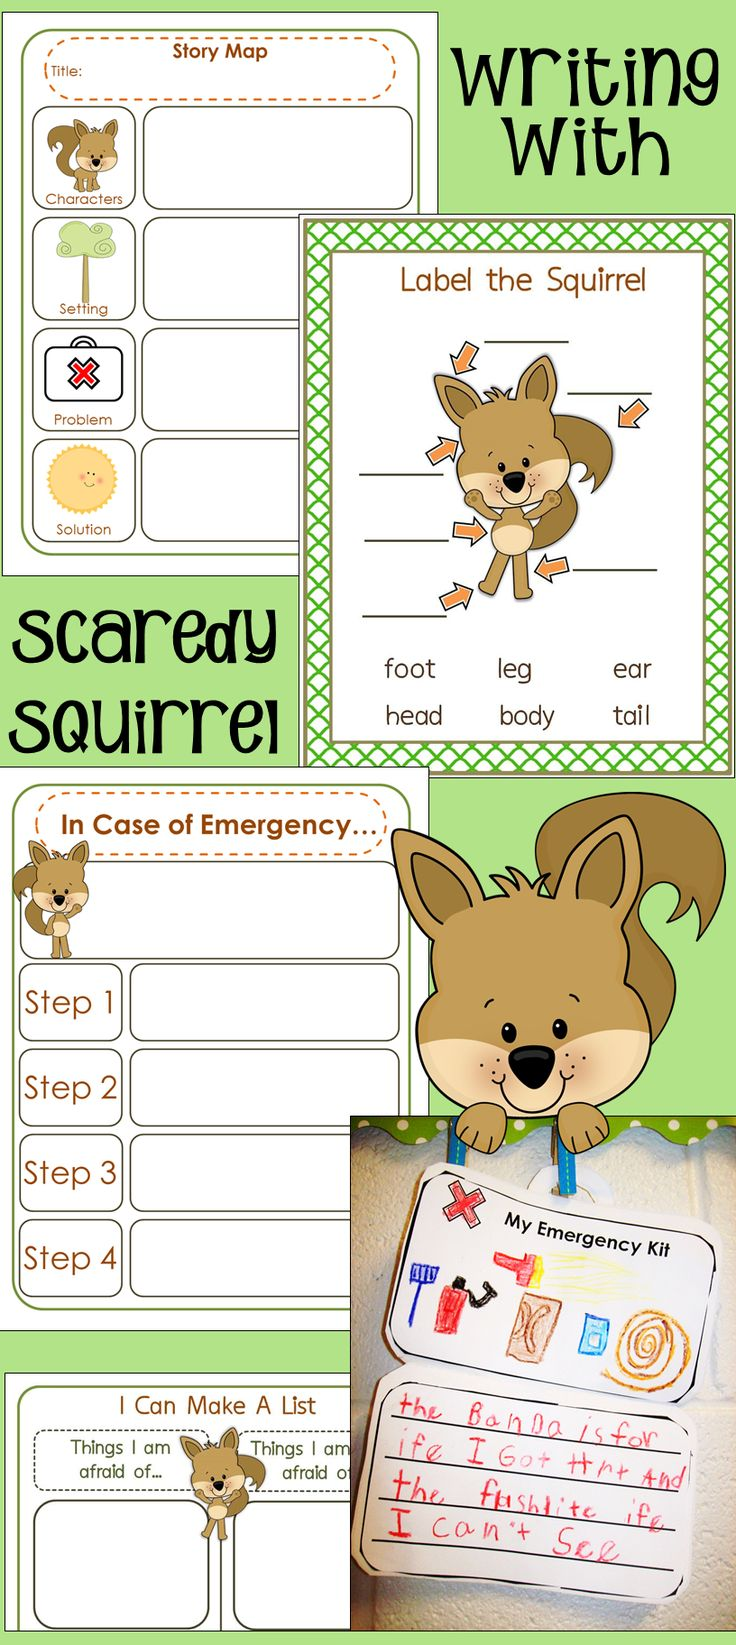 Writing with Scaredy Squirrel  Just talked about this in prof. Dev. Yesterday